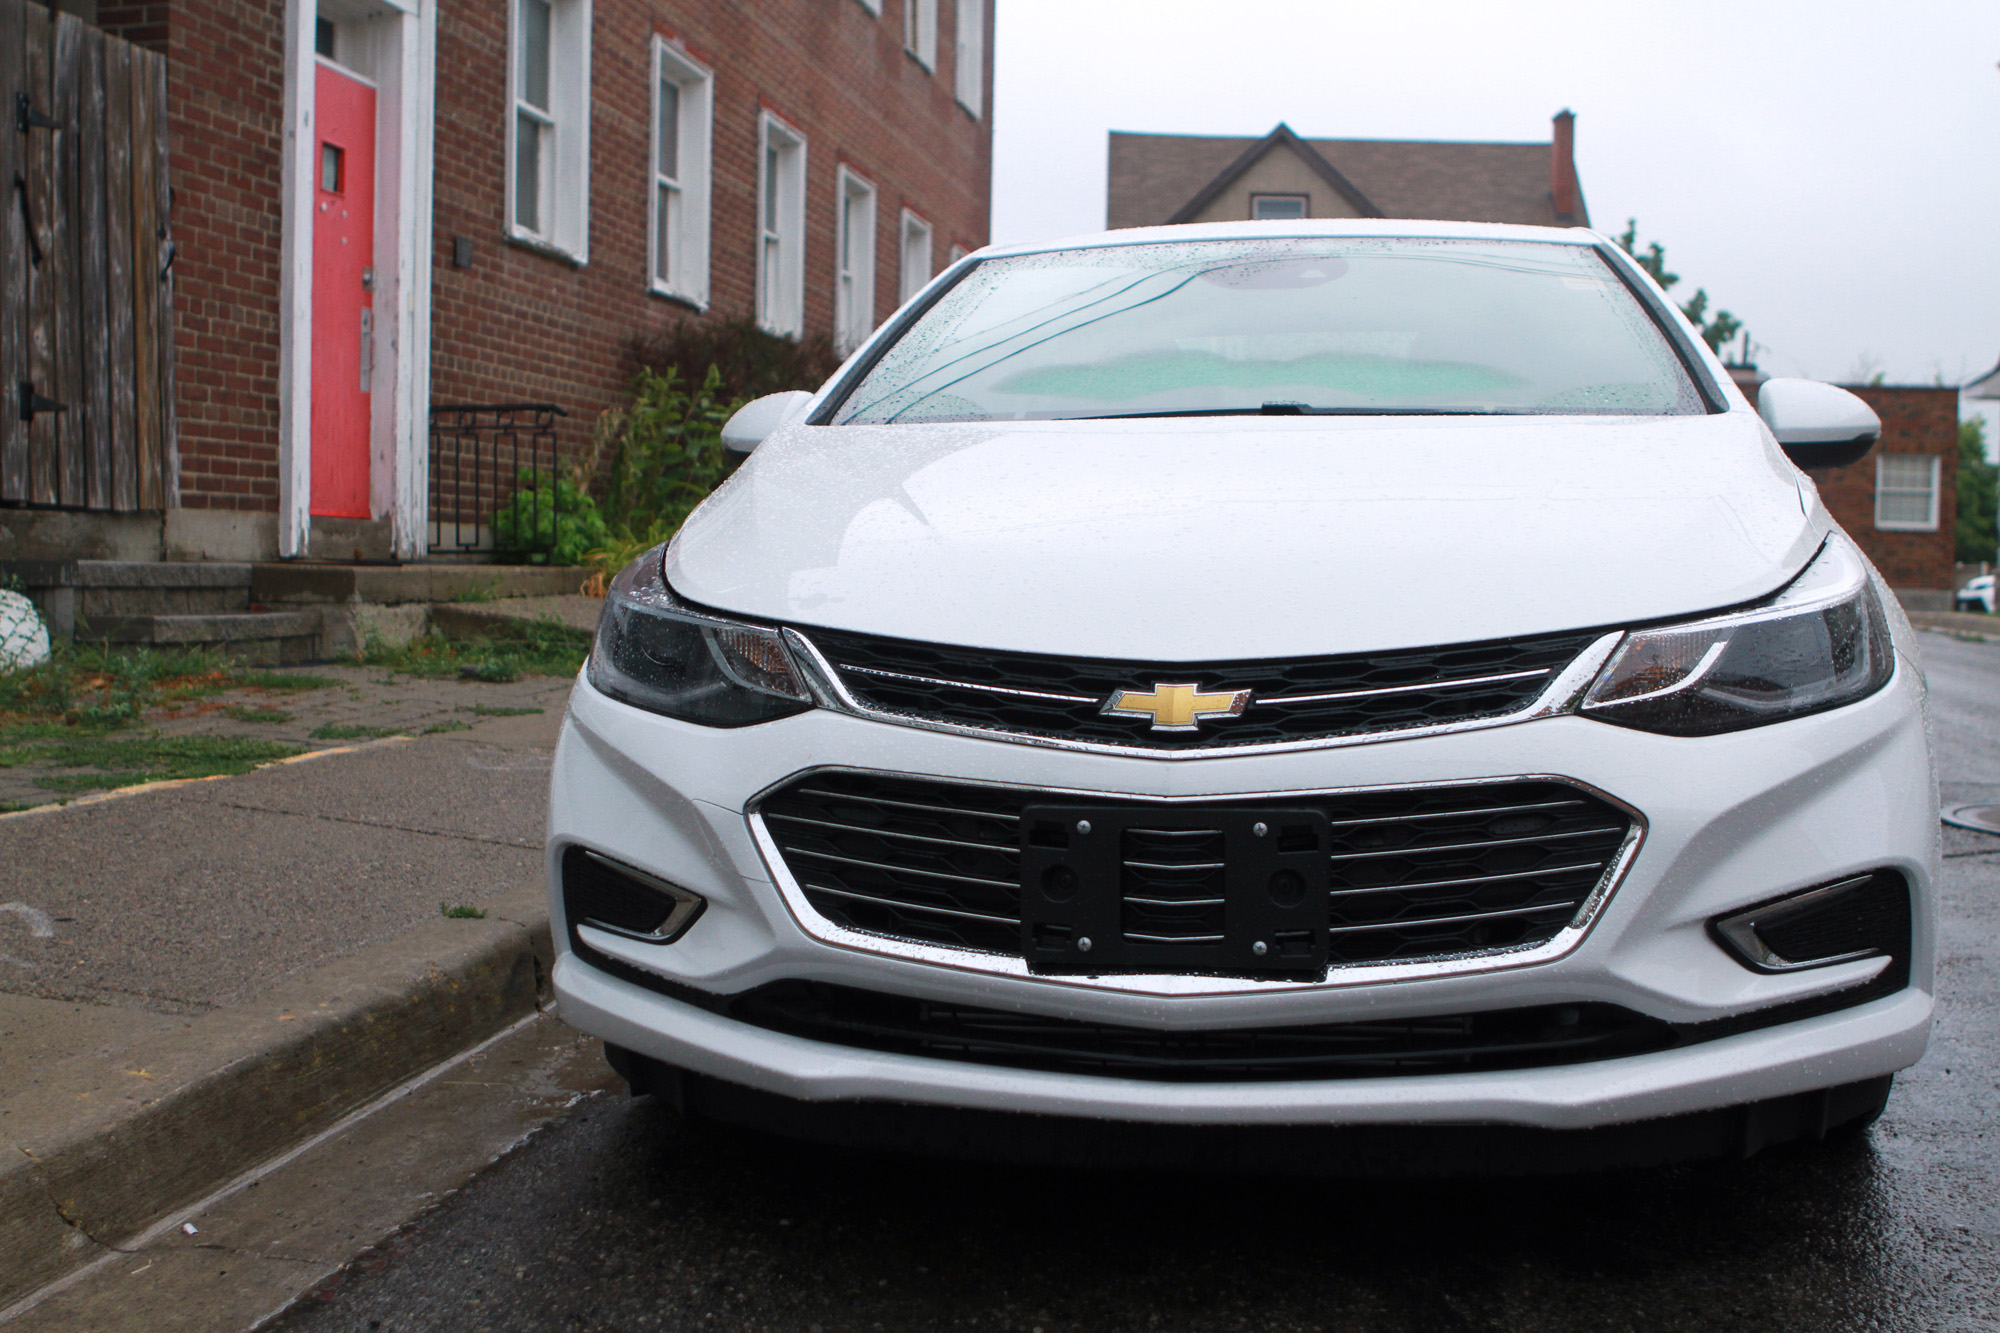 Chevy Cruze front grill